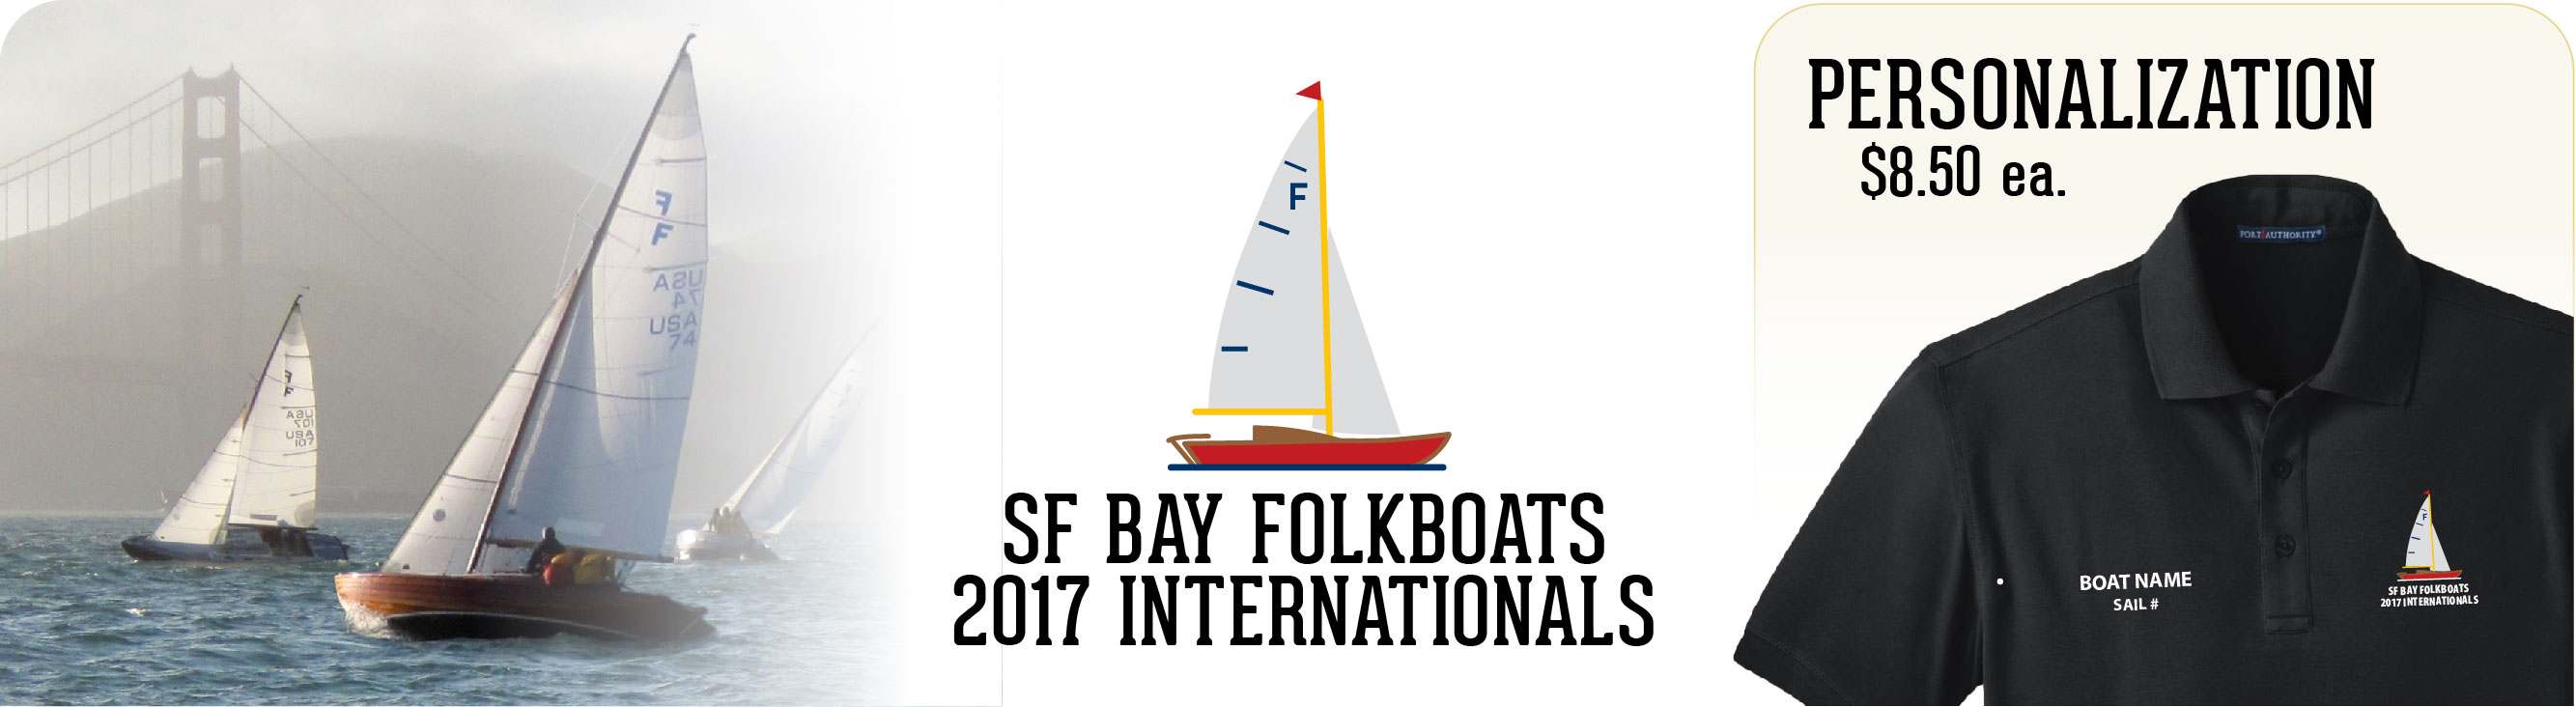 corinthian-yc-folkboat-internationals-2017-banner-01.jpg